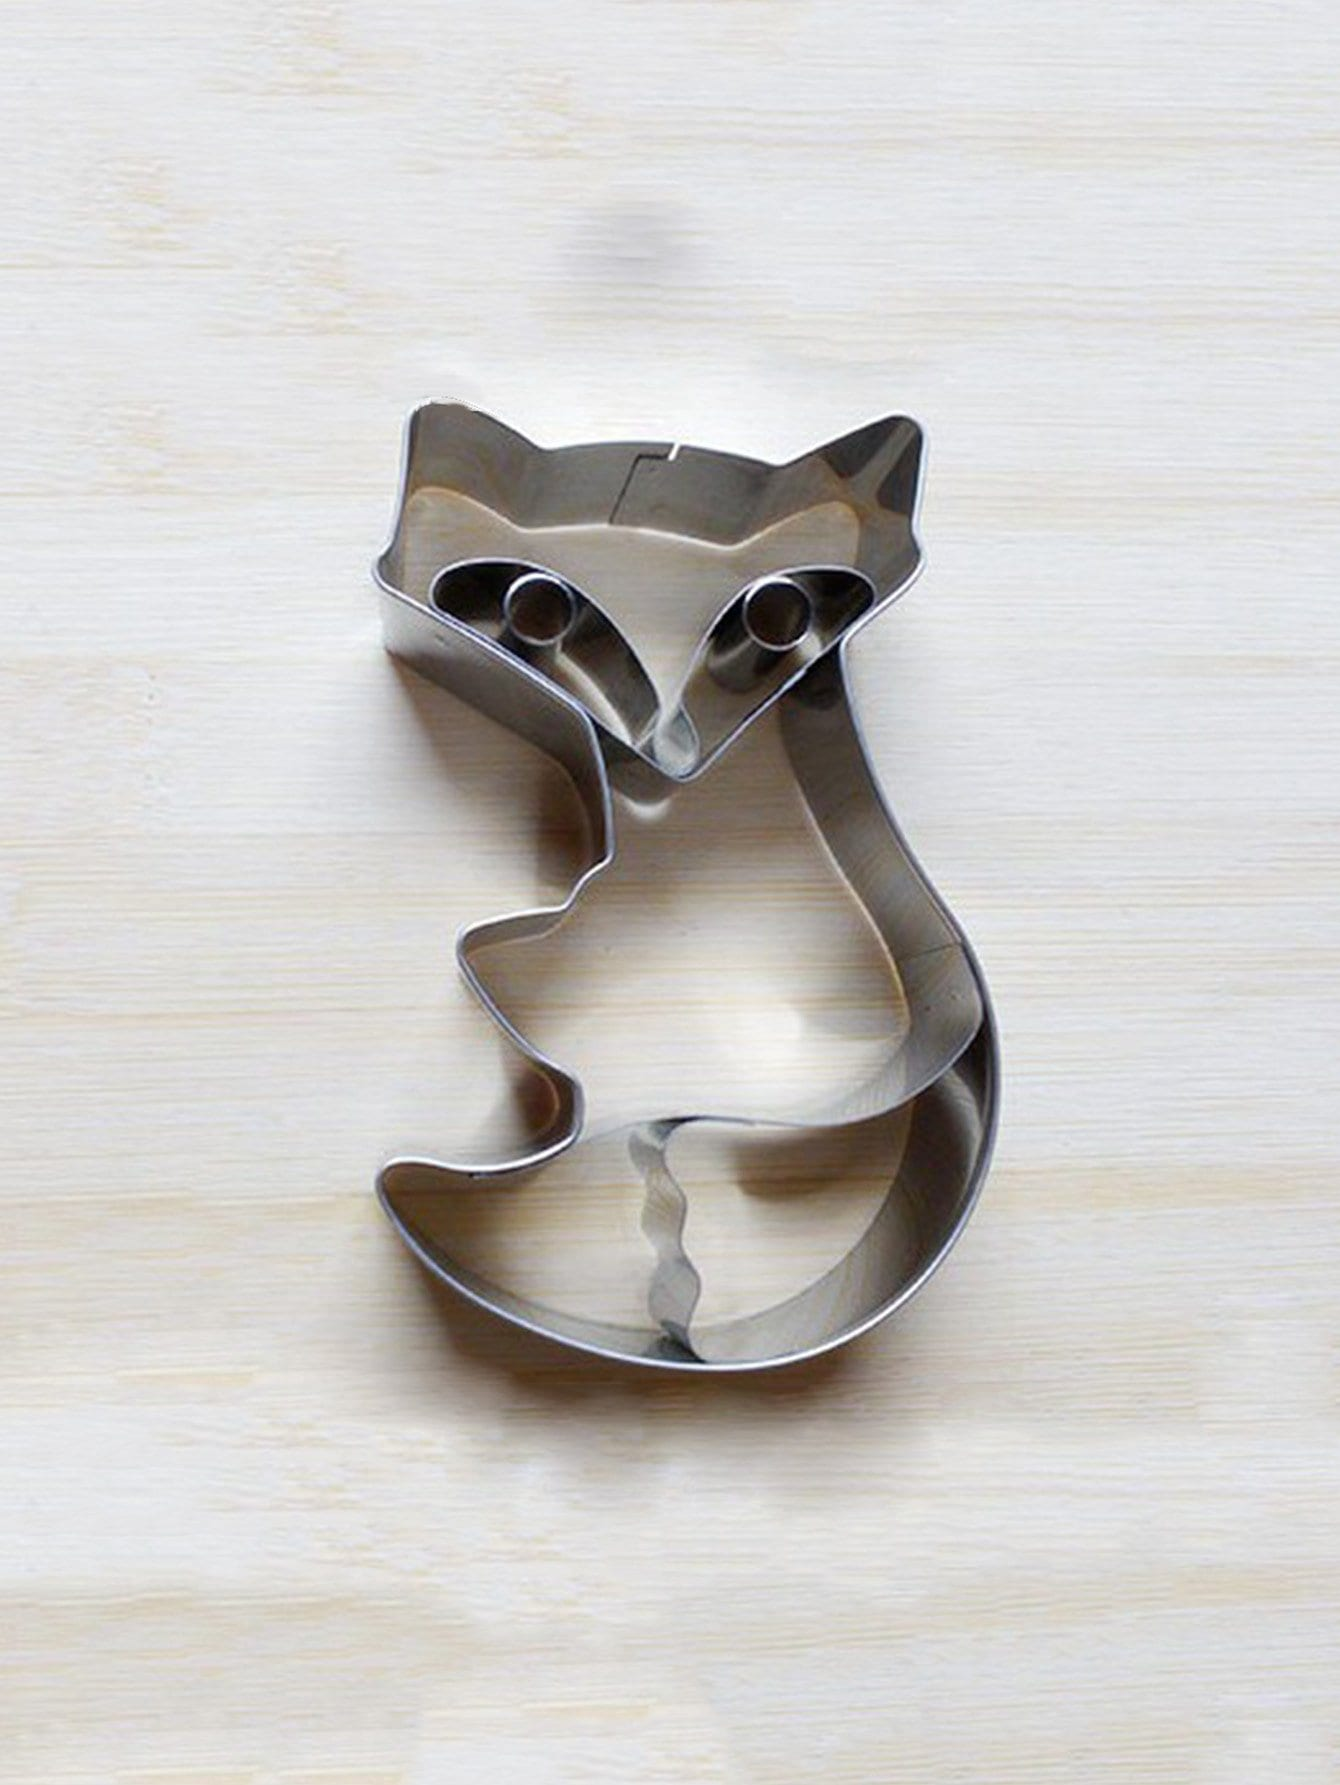 Stainless Steel Fox Cookie Cutter 1pc stainless steel abs chrysanthemum heart shaped spring cookie cutter